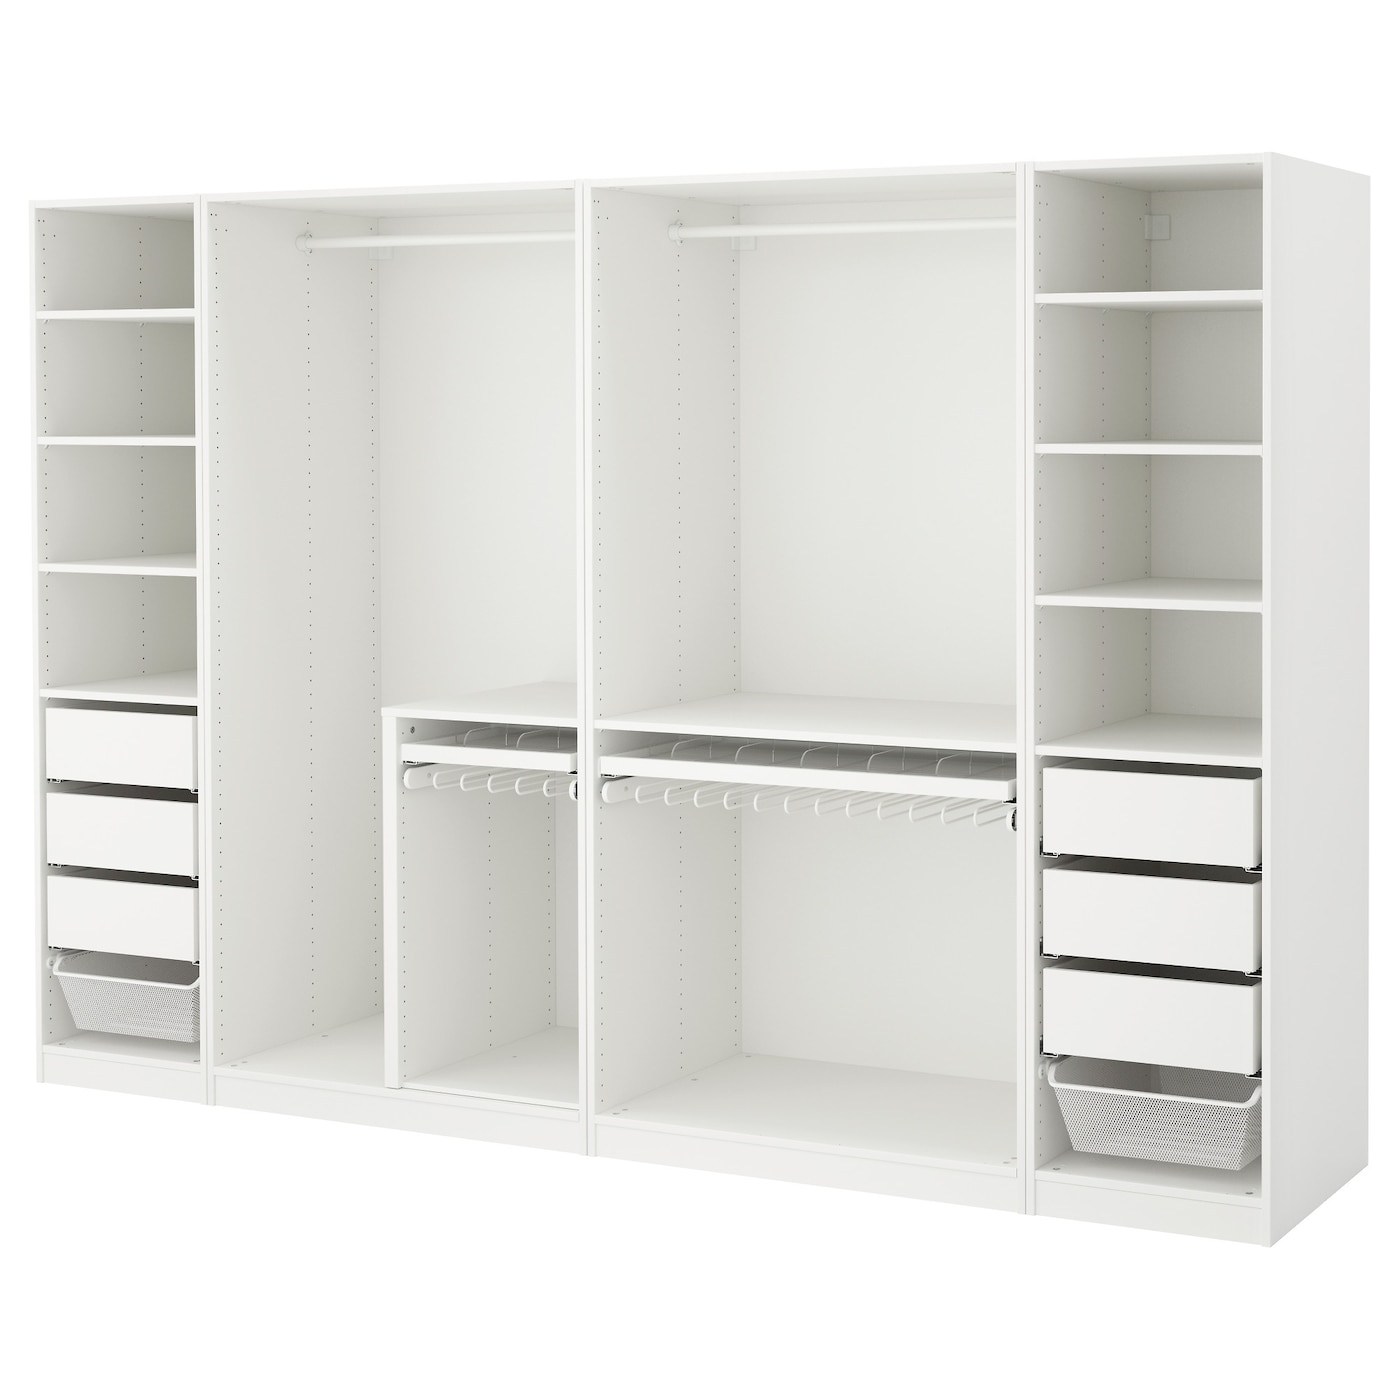 White closet cabinet extravagant home design - Customiser armoire ikea ...